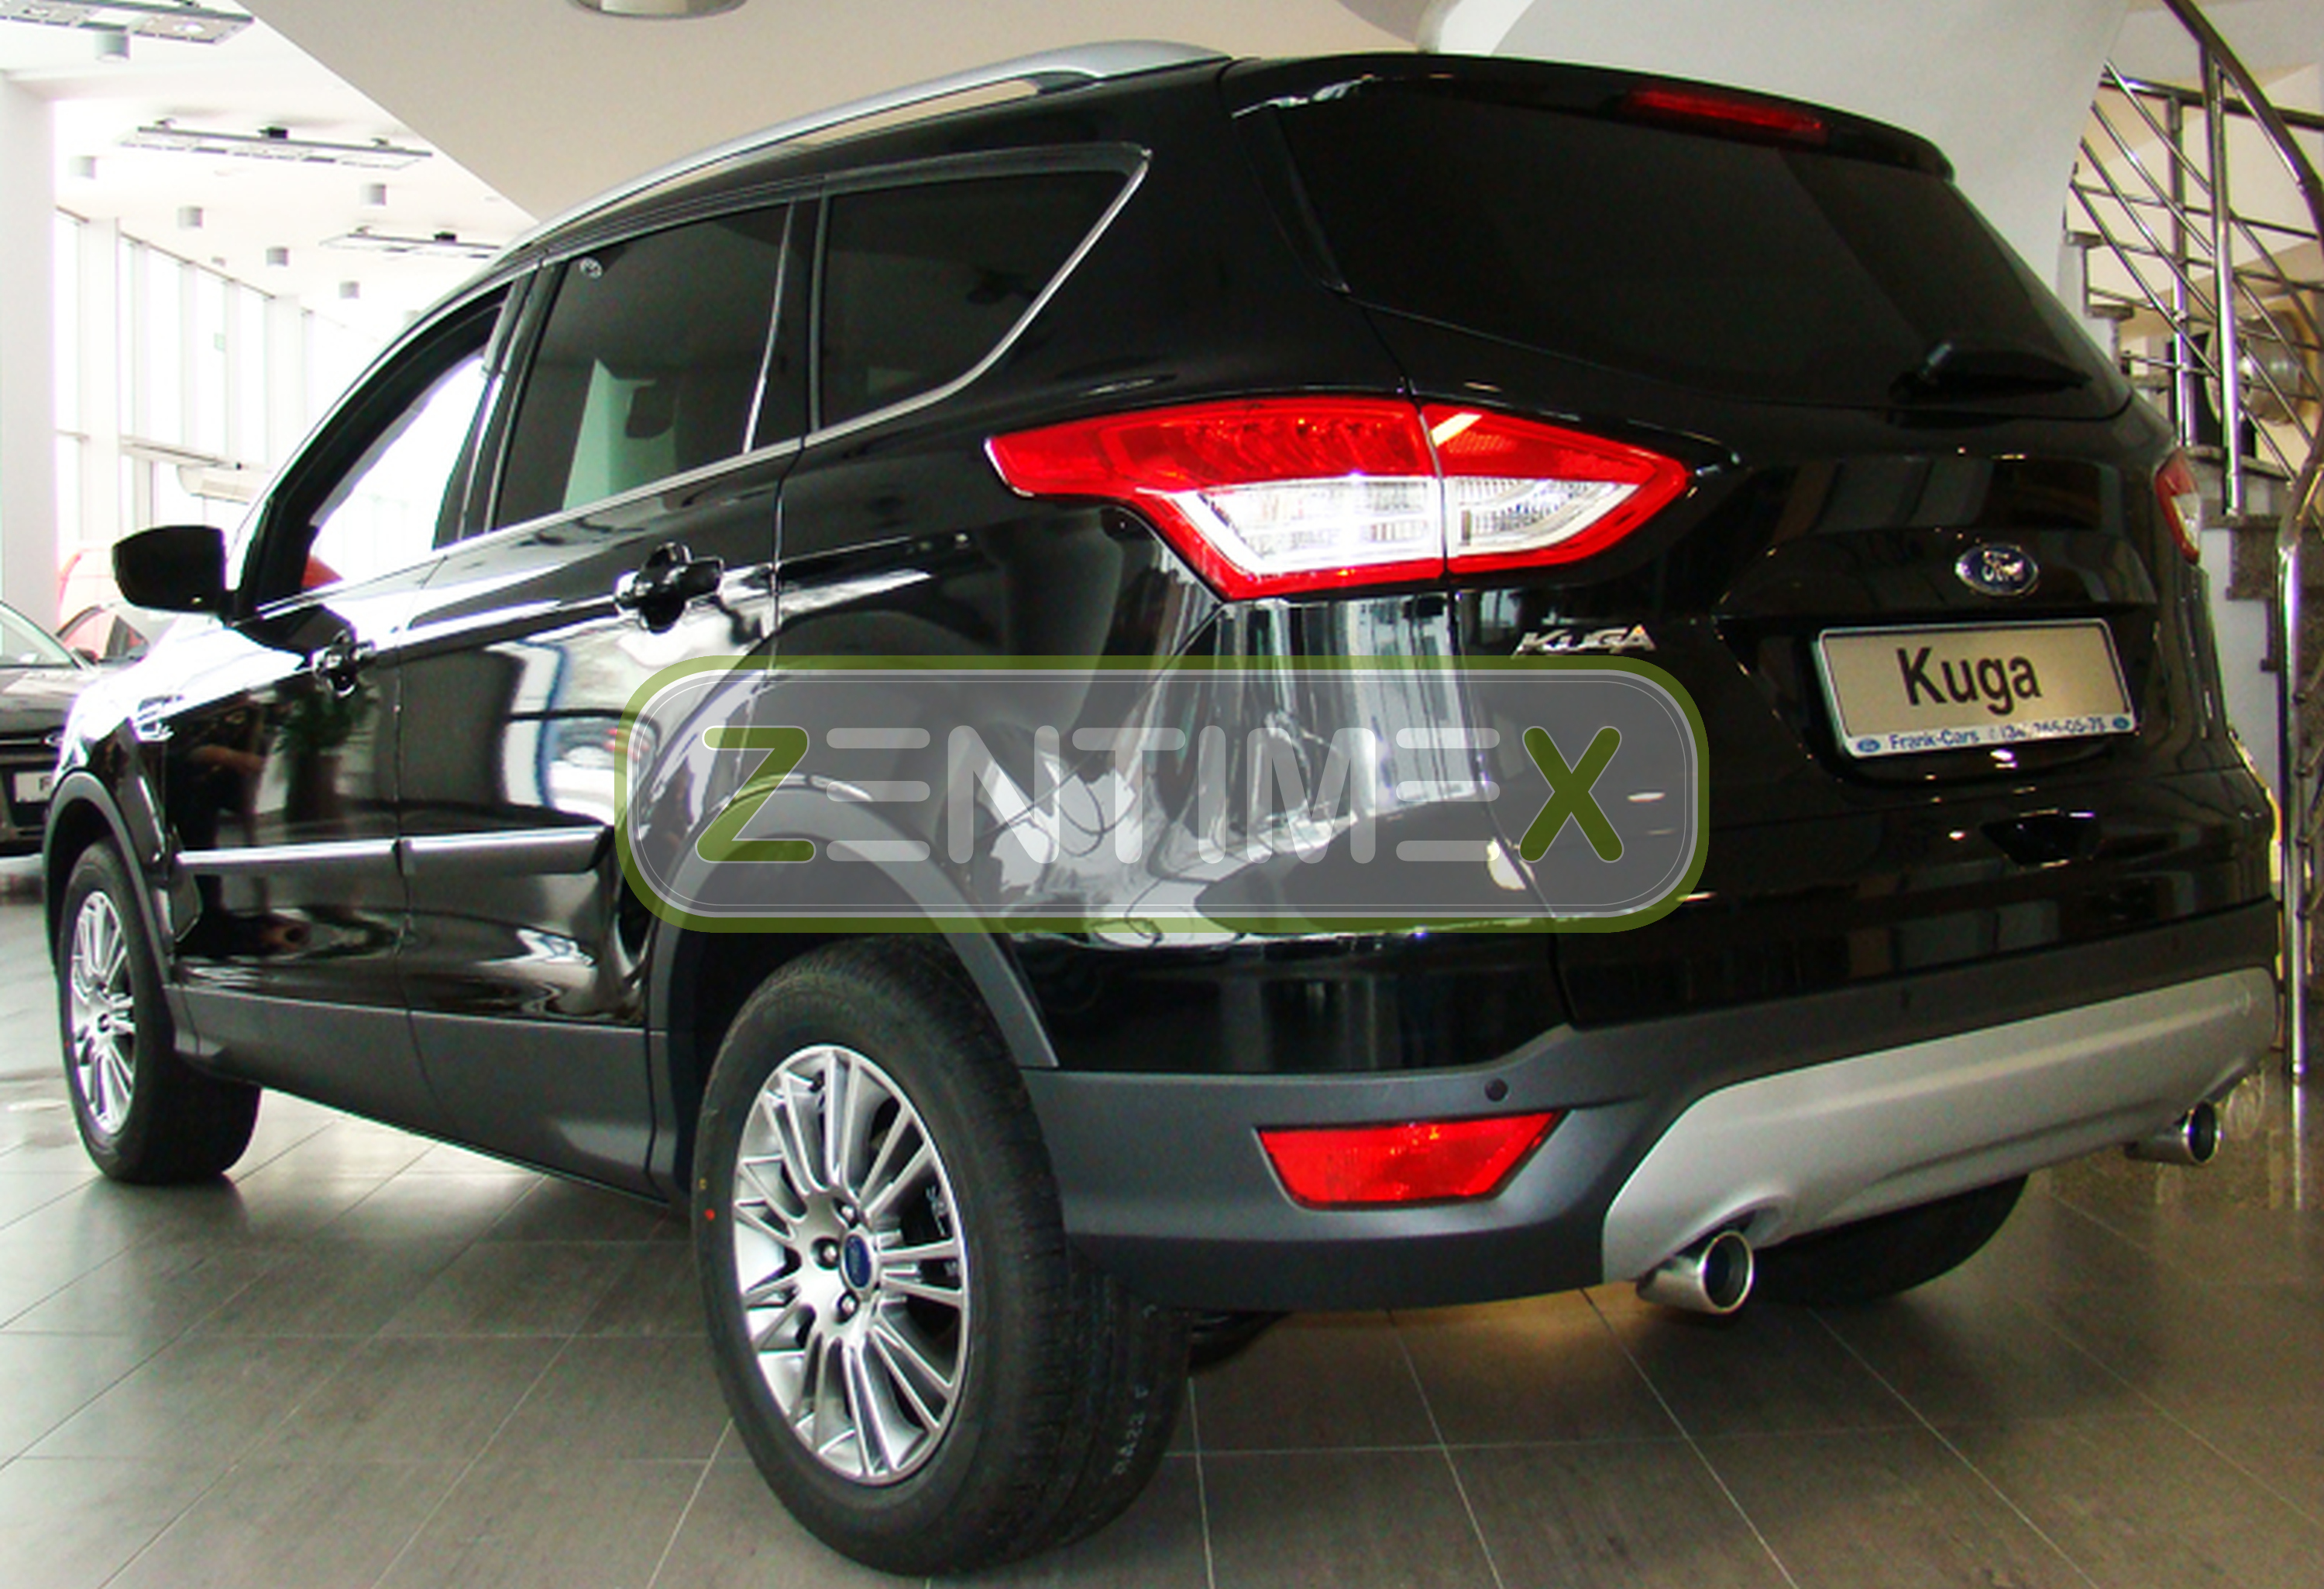 schutzleisten f r ford kuga 2 2013 5 t rer ebay. Black Bedroom Furniture Sets. Home Design Ideas